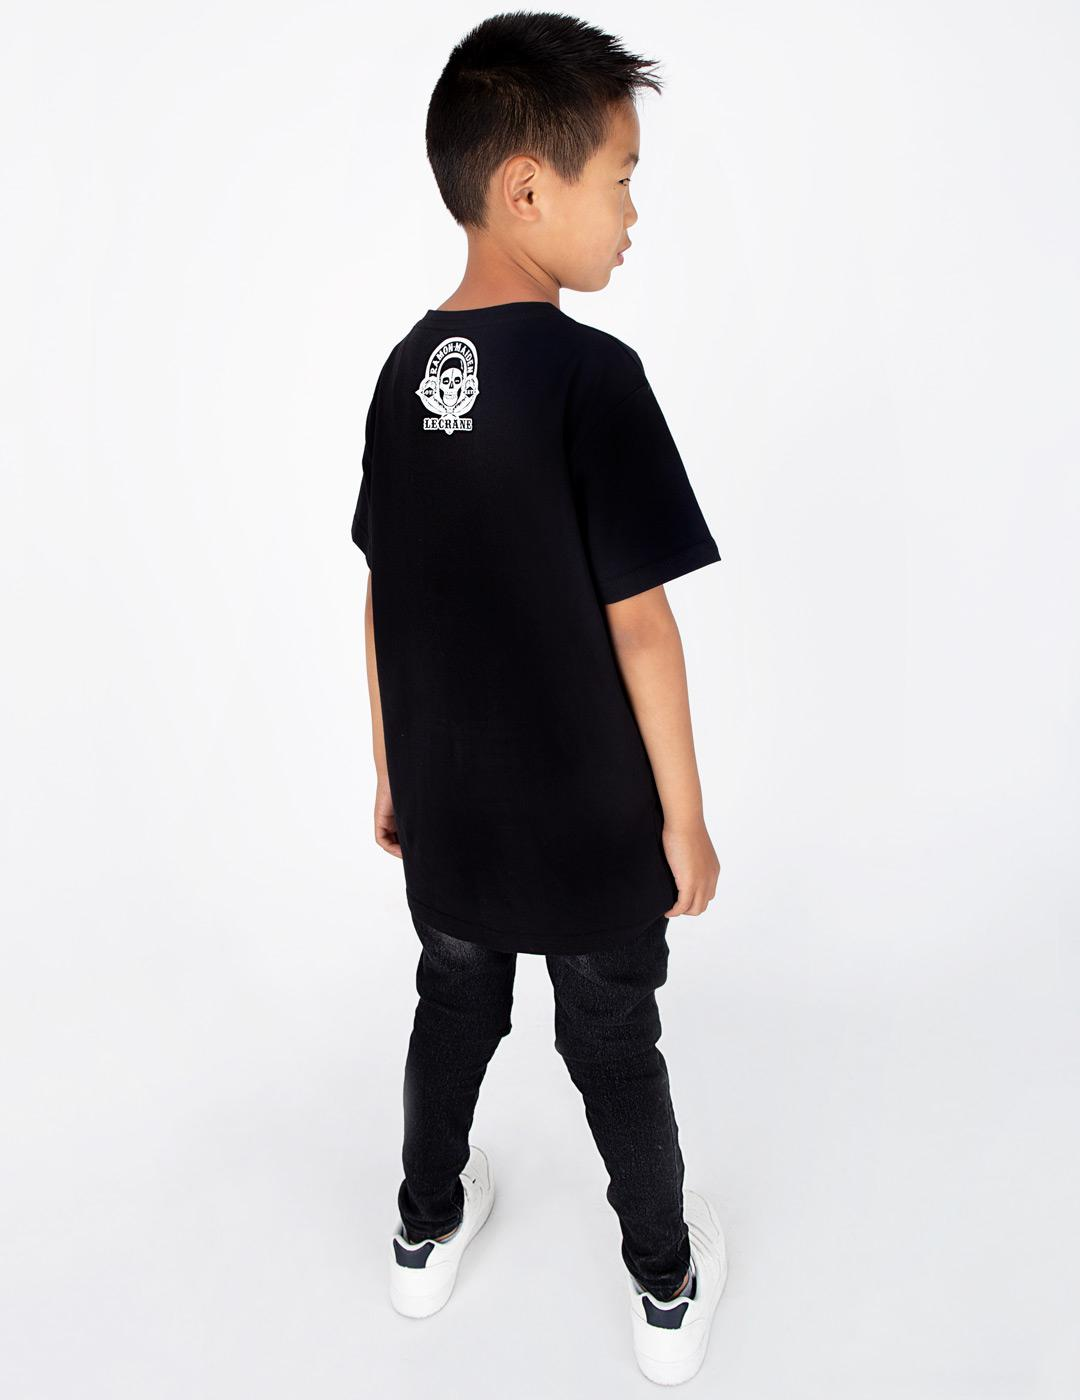 RAMON MAIDEN SHE KIDS T-SHIRT